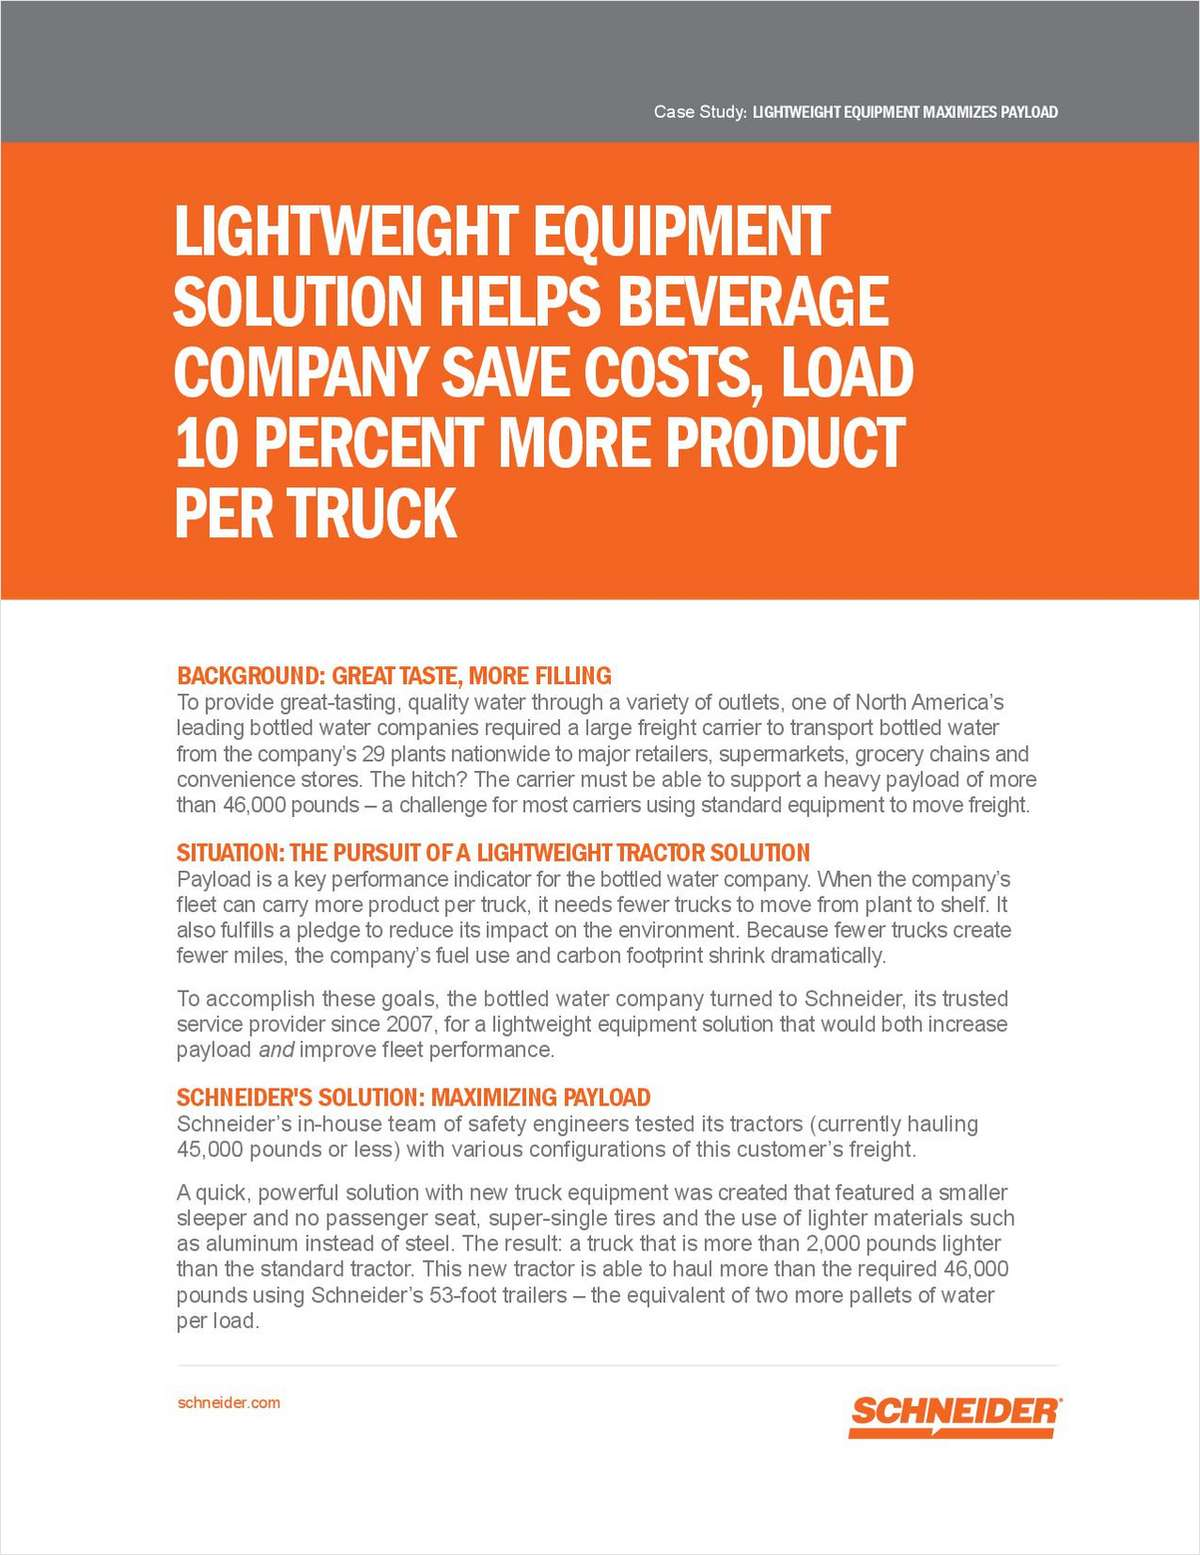 Maximize Efficiency With 10% More Payload Per Trailer